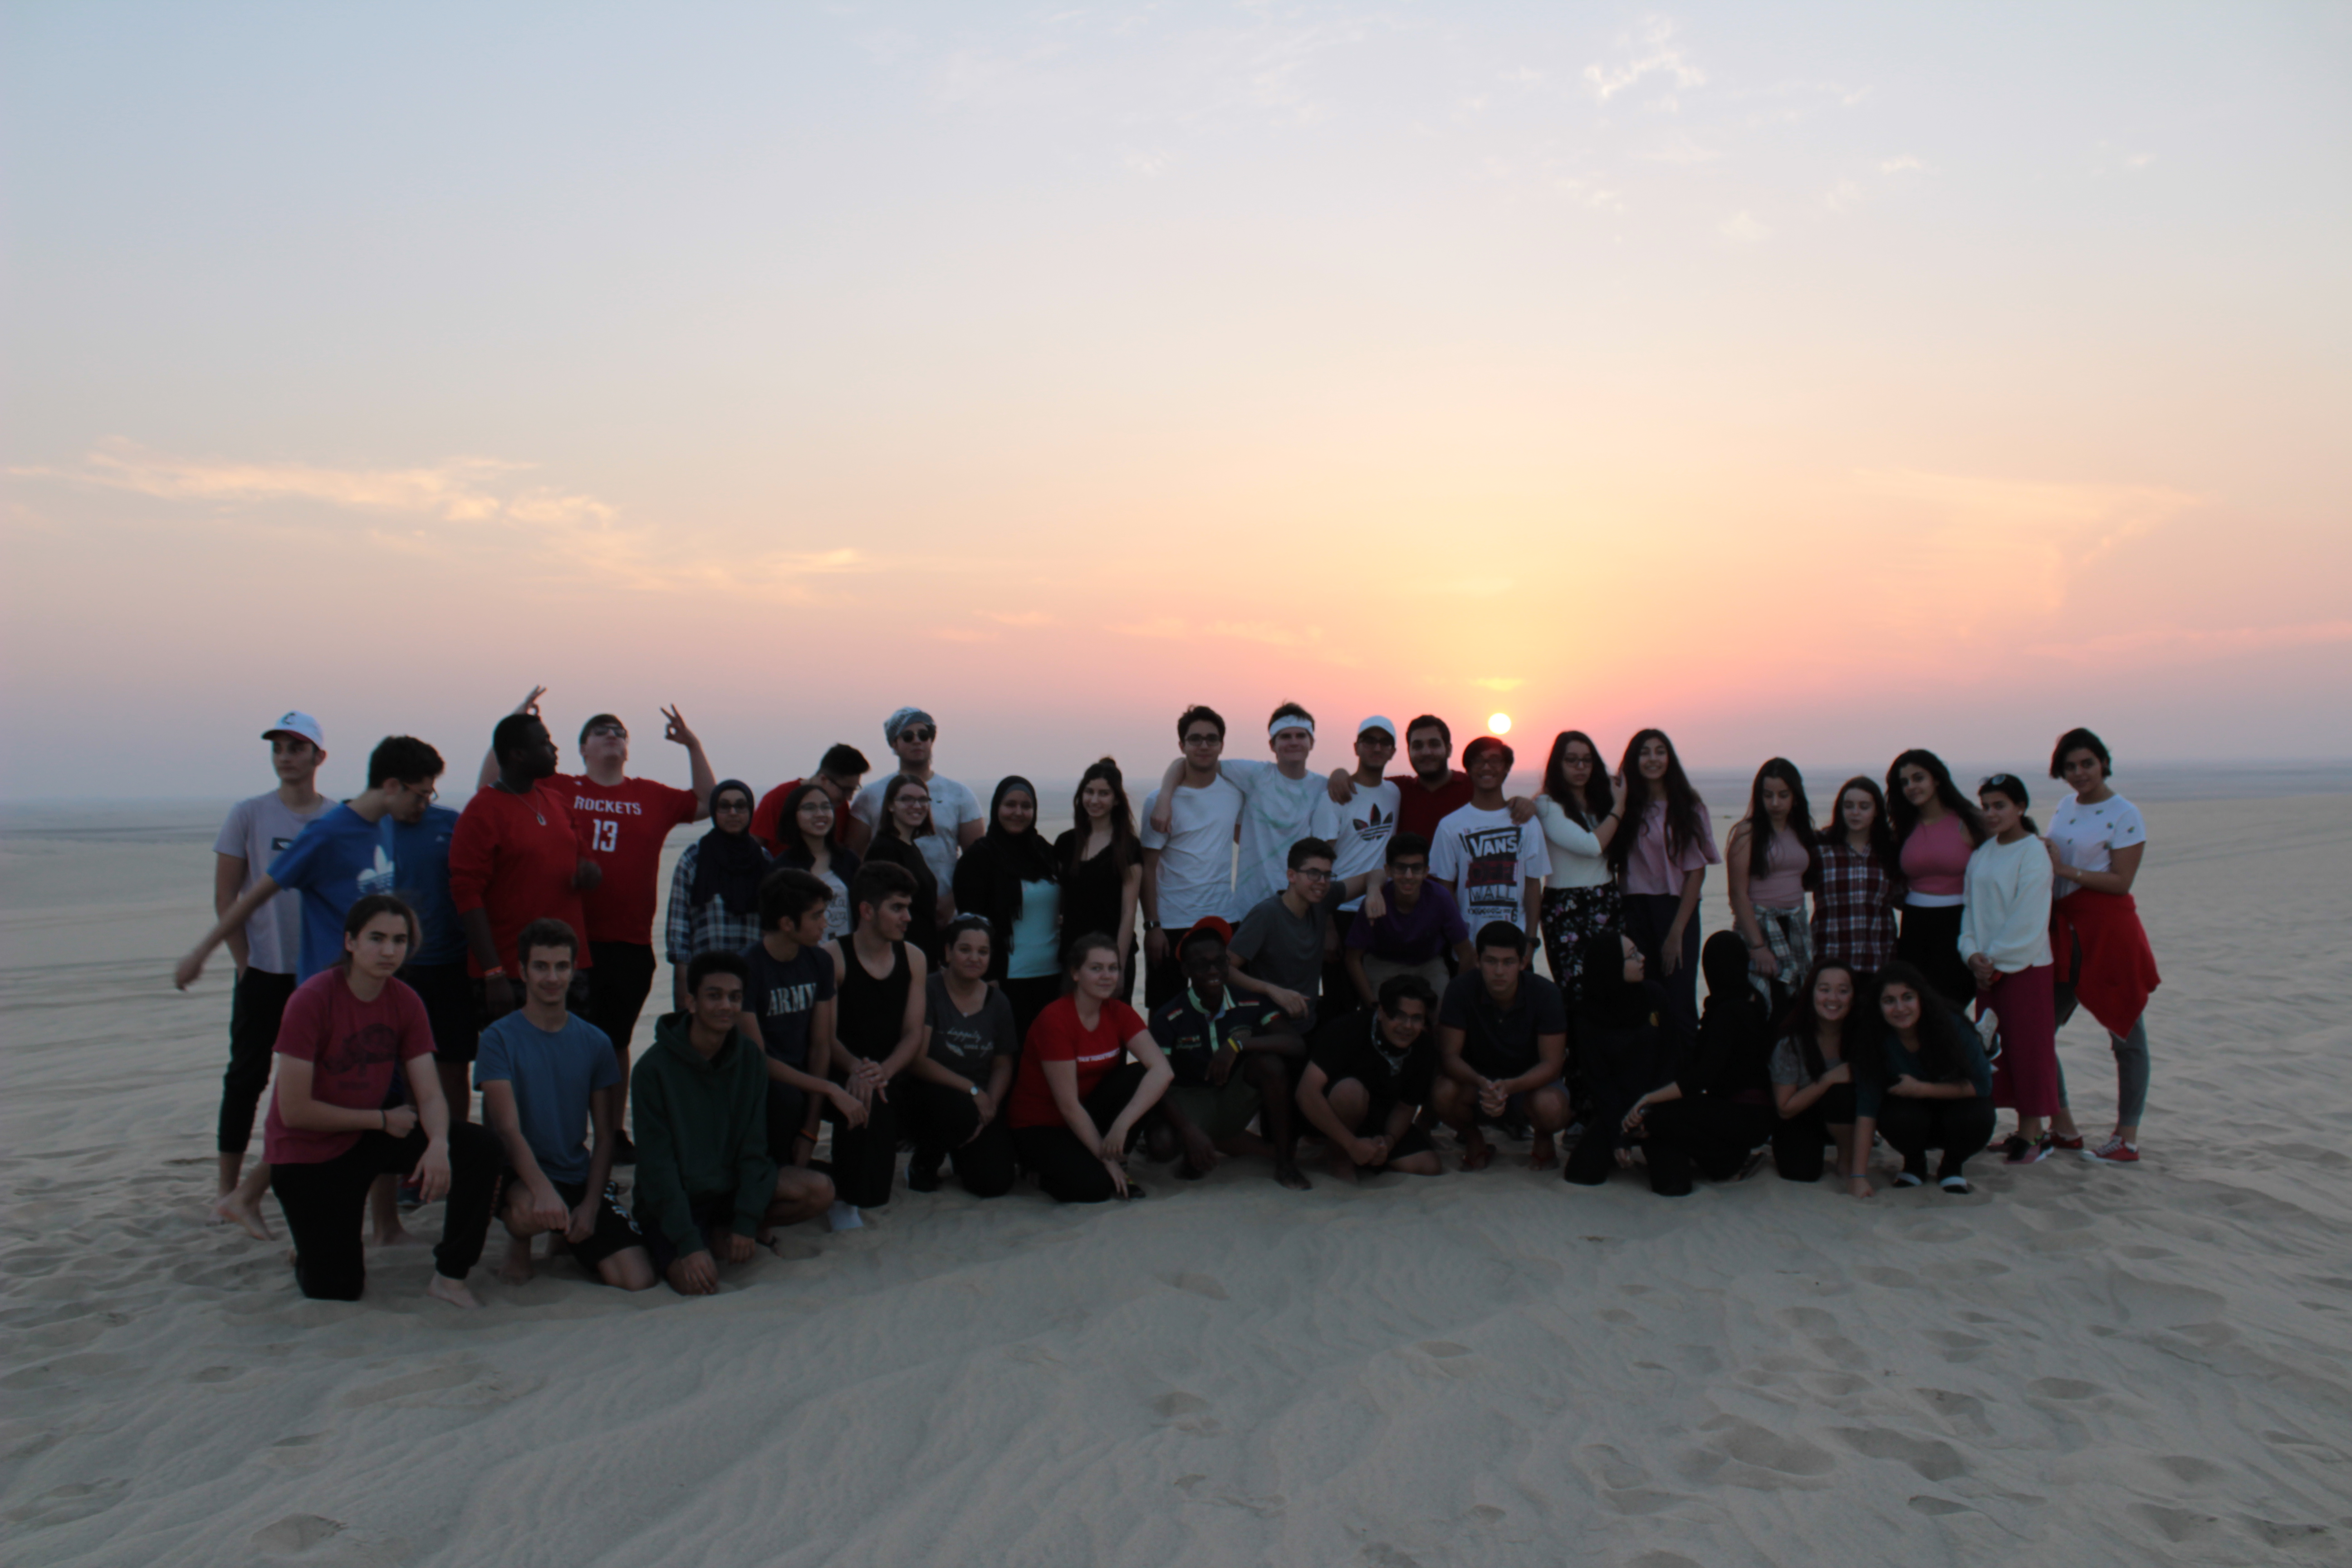 Group photo at sunset in the desert